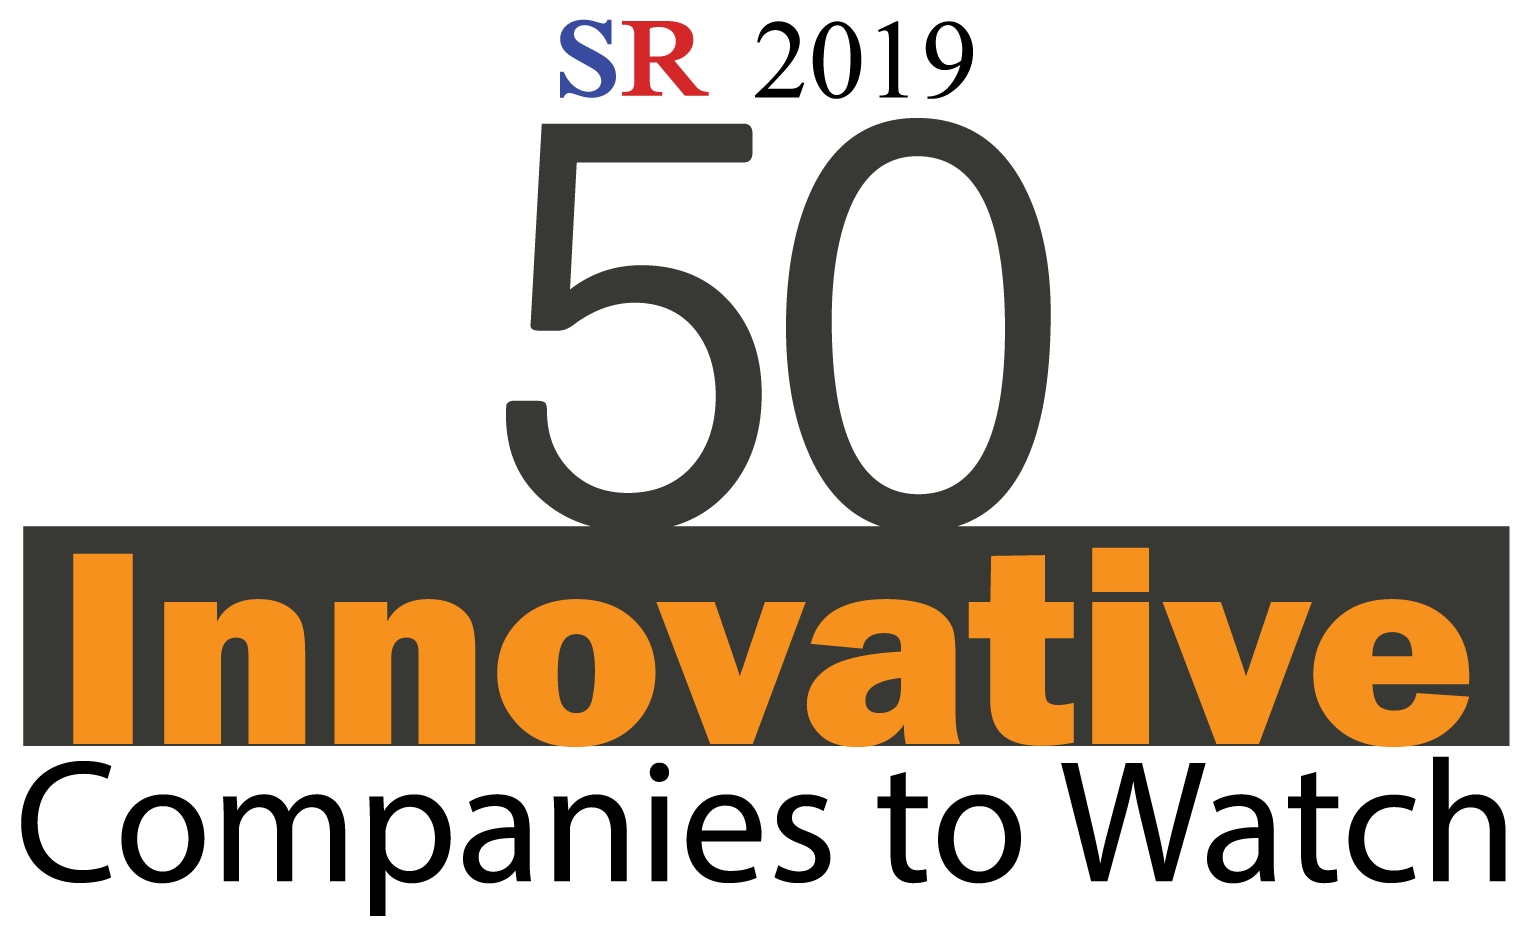 Silicon Valley Review - TEMPOE One of 50 Innovative Companies to Watch